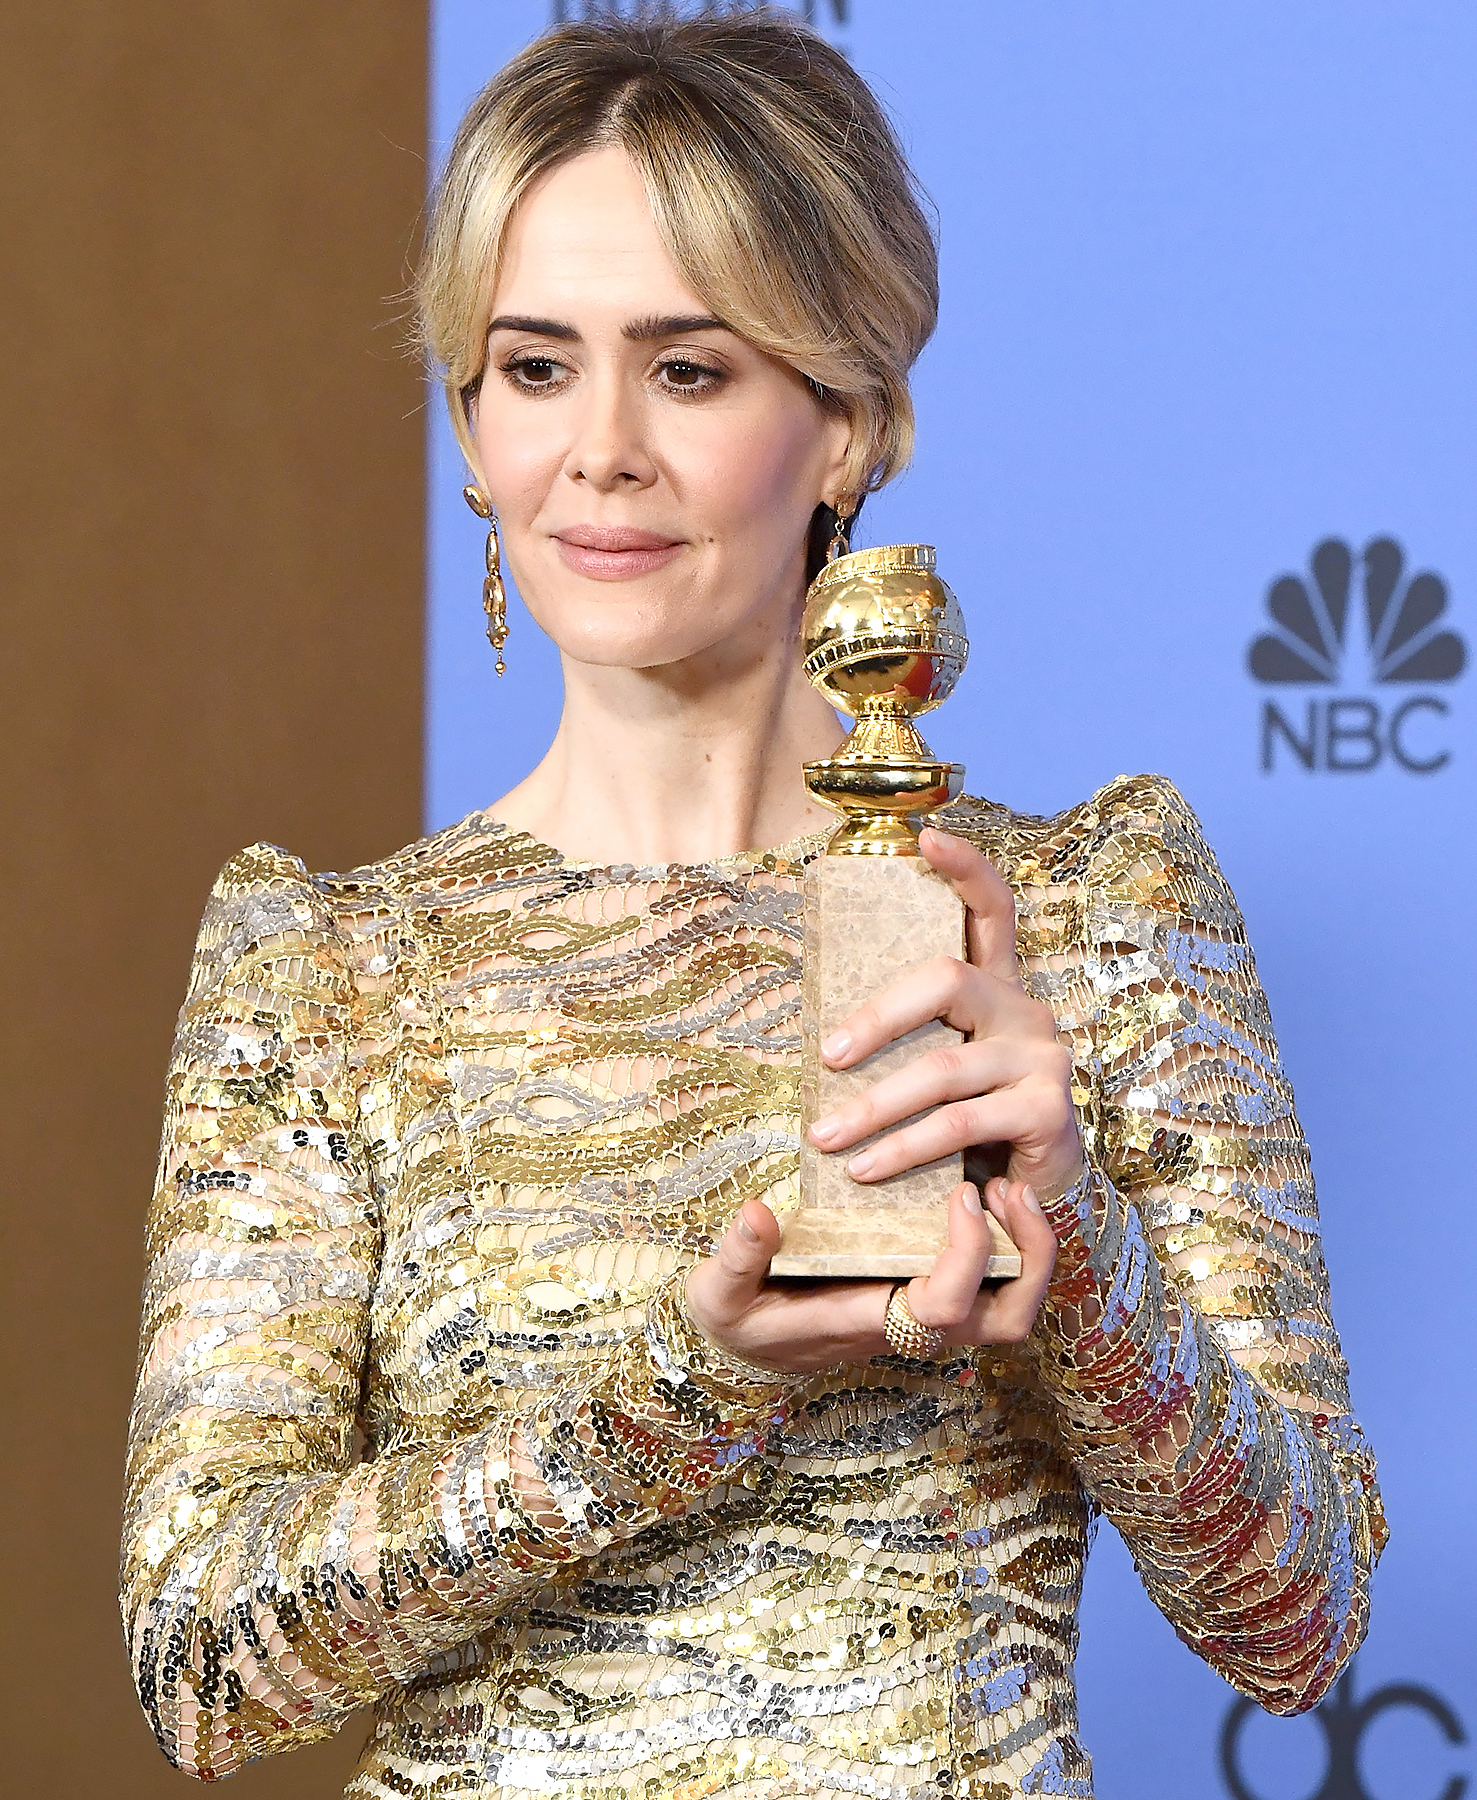 Sarah Paulson, winner of the Best Performance in a Miniseries or Television Film, for 'The People v. O.J. Simpson- American Crime Story'.